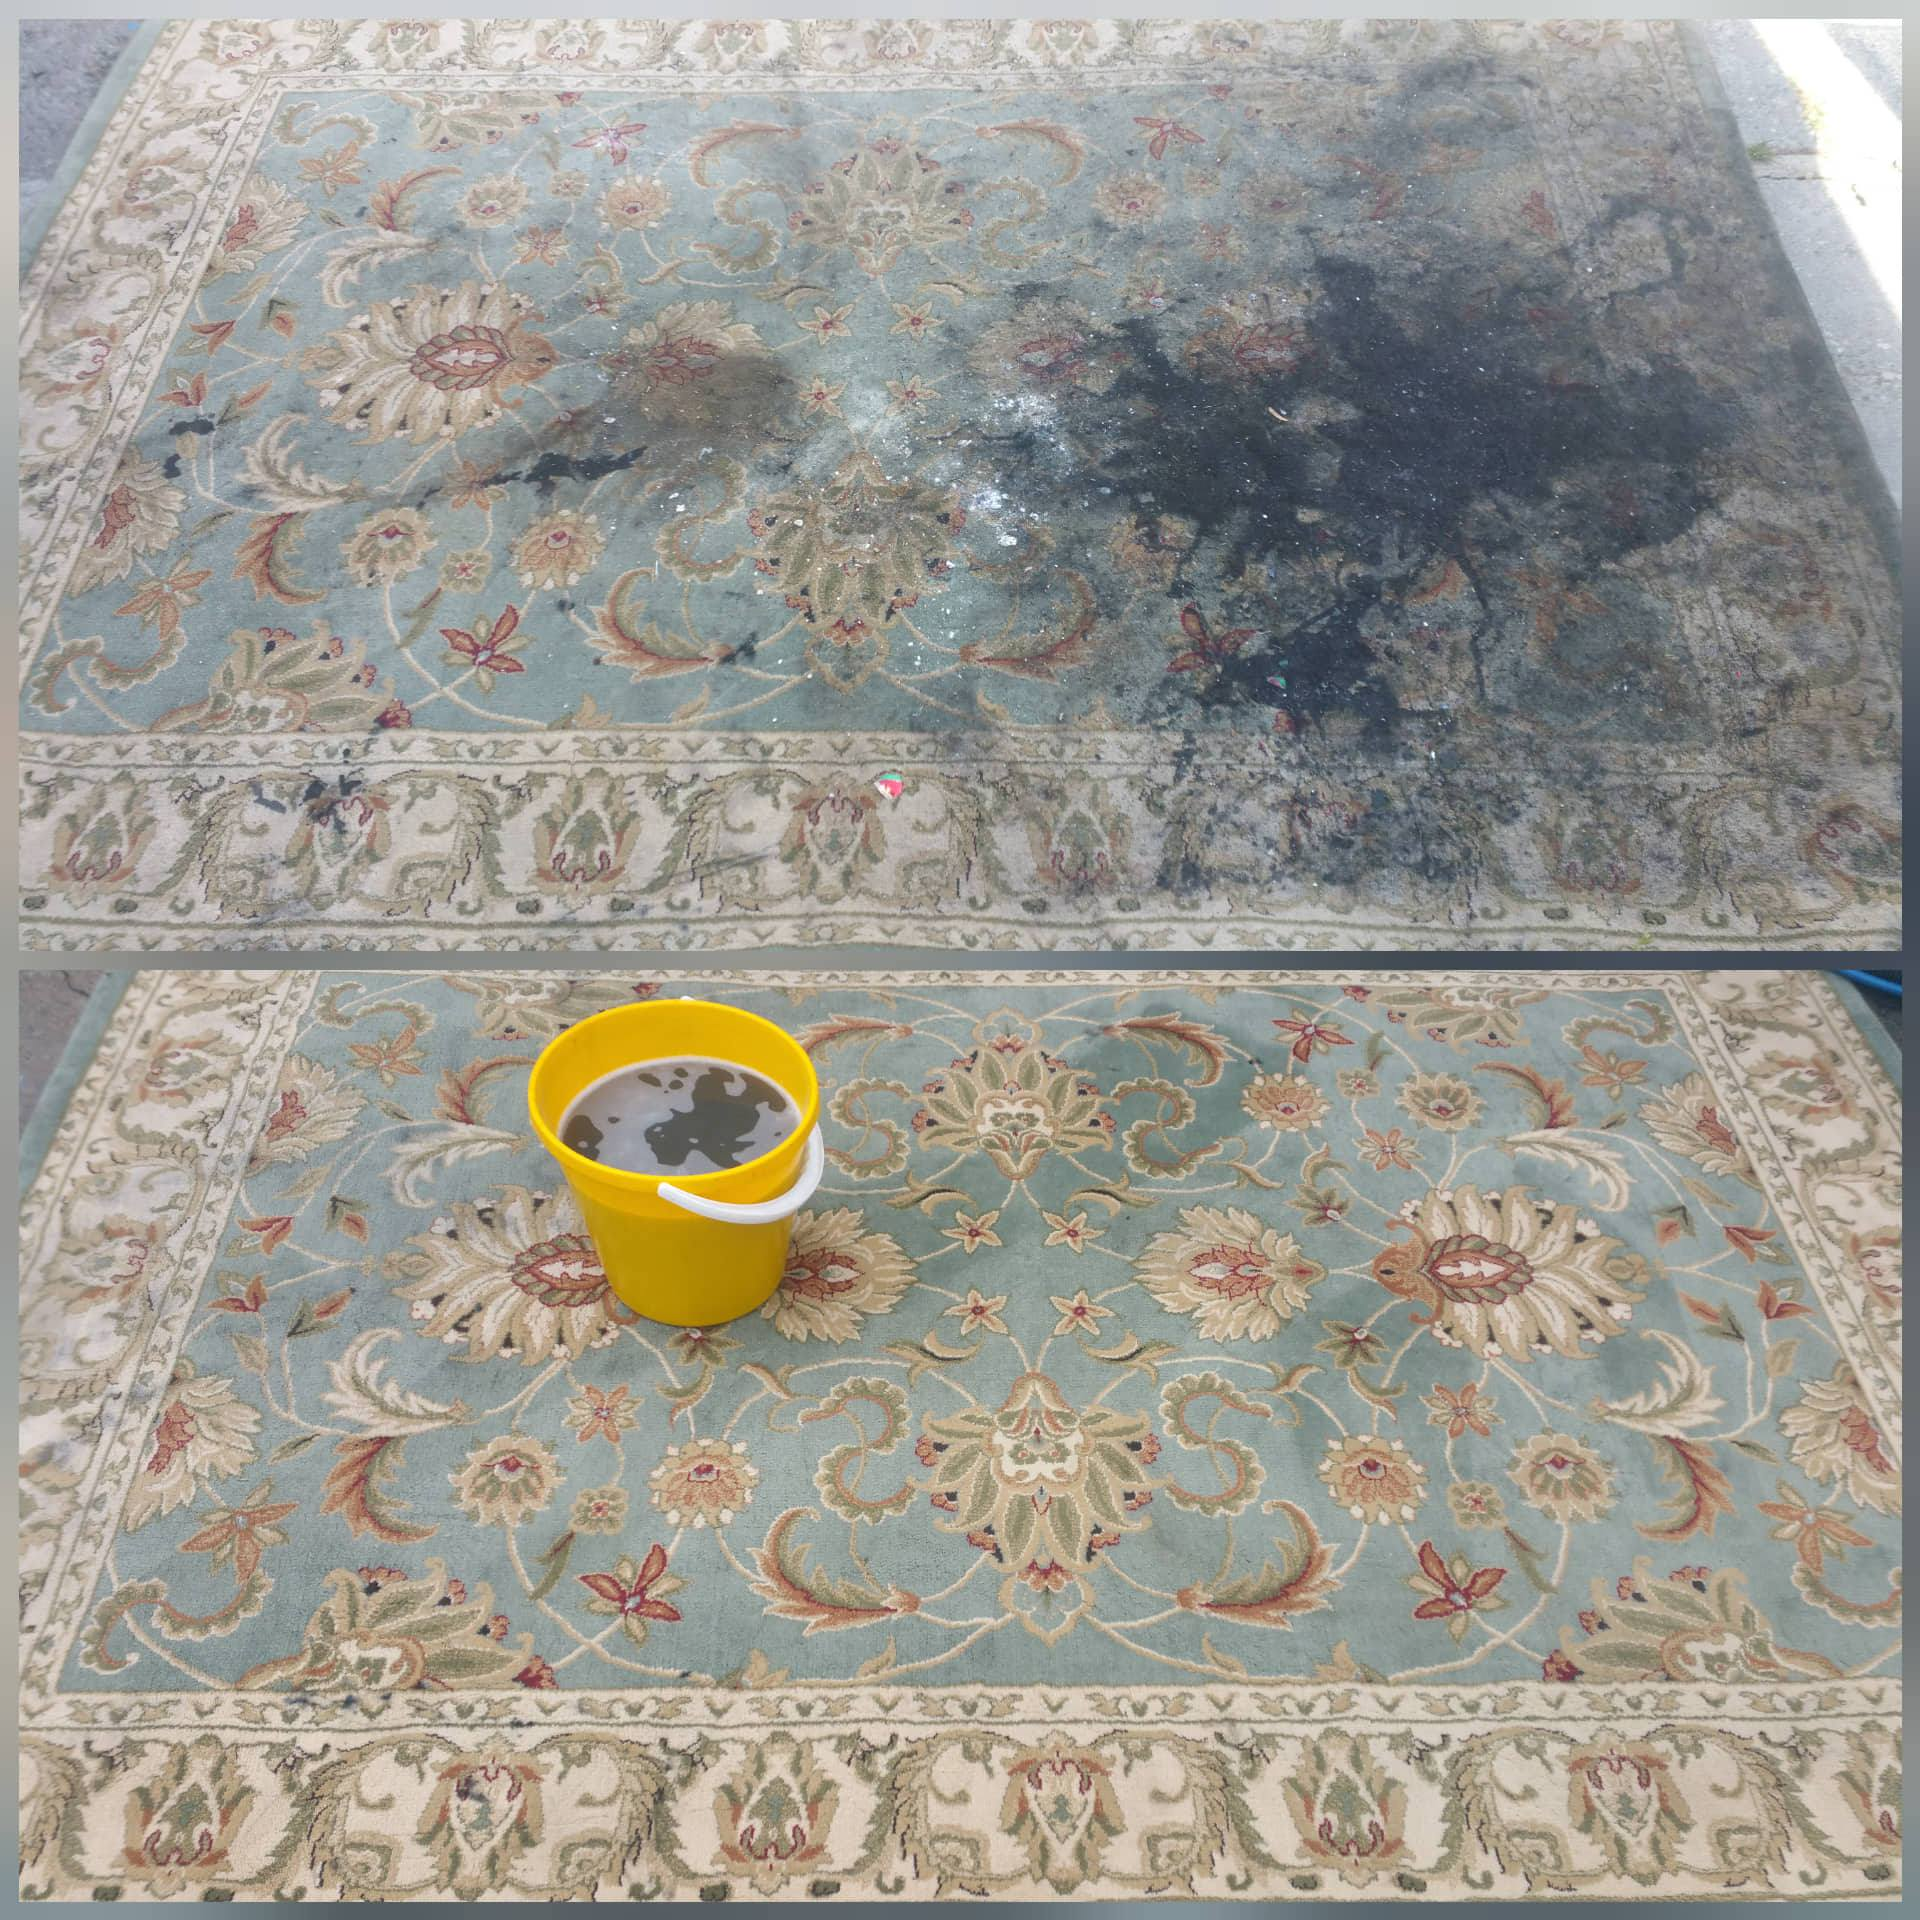 Carpet Cleaning Services Carpet and Upholstery Cleaning